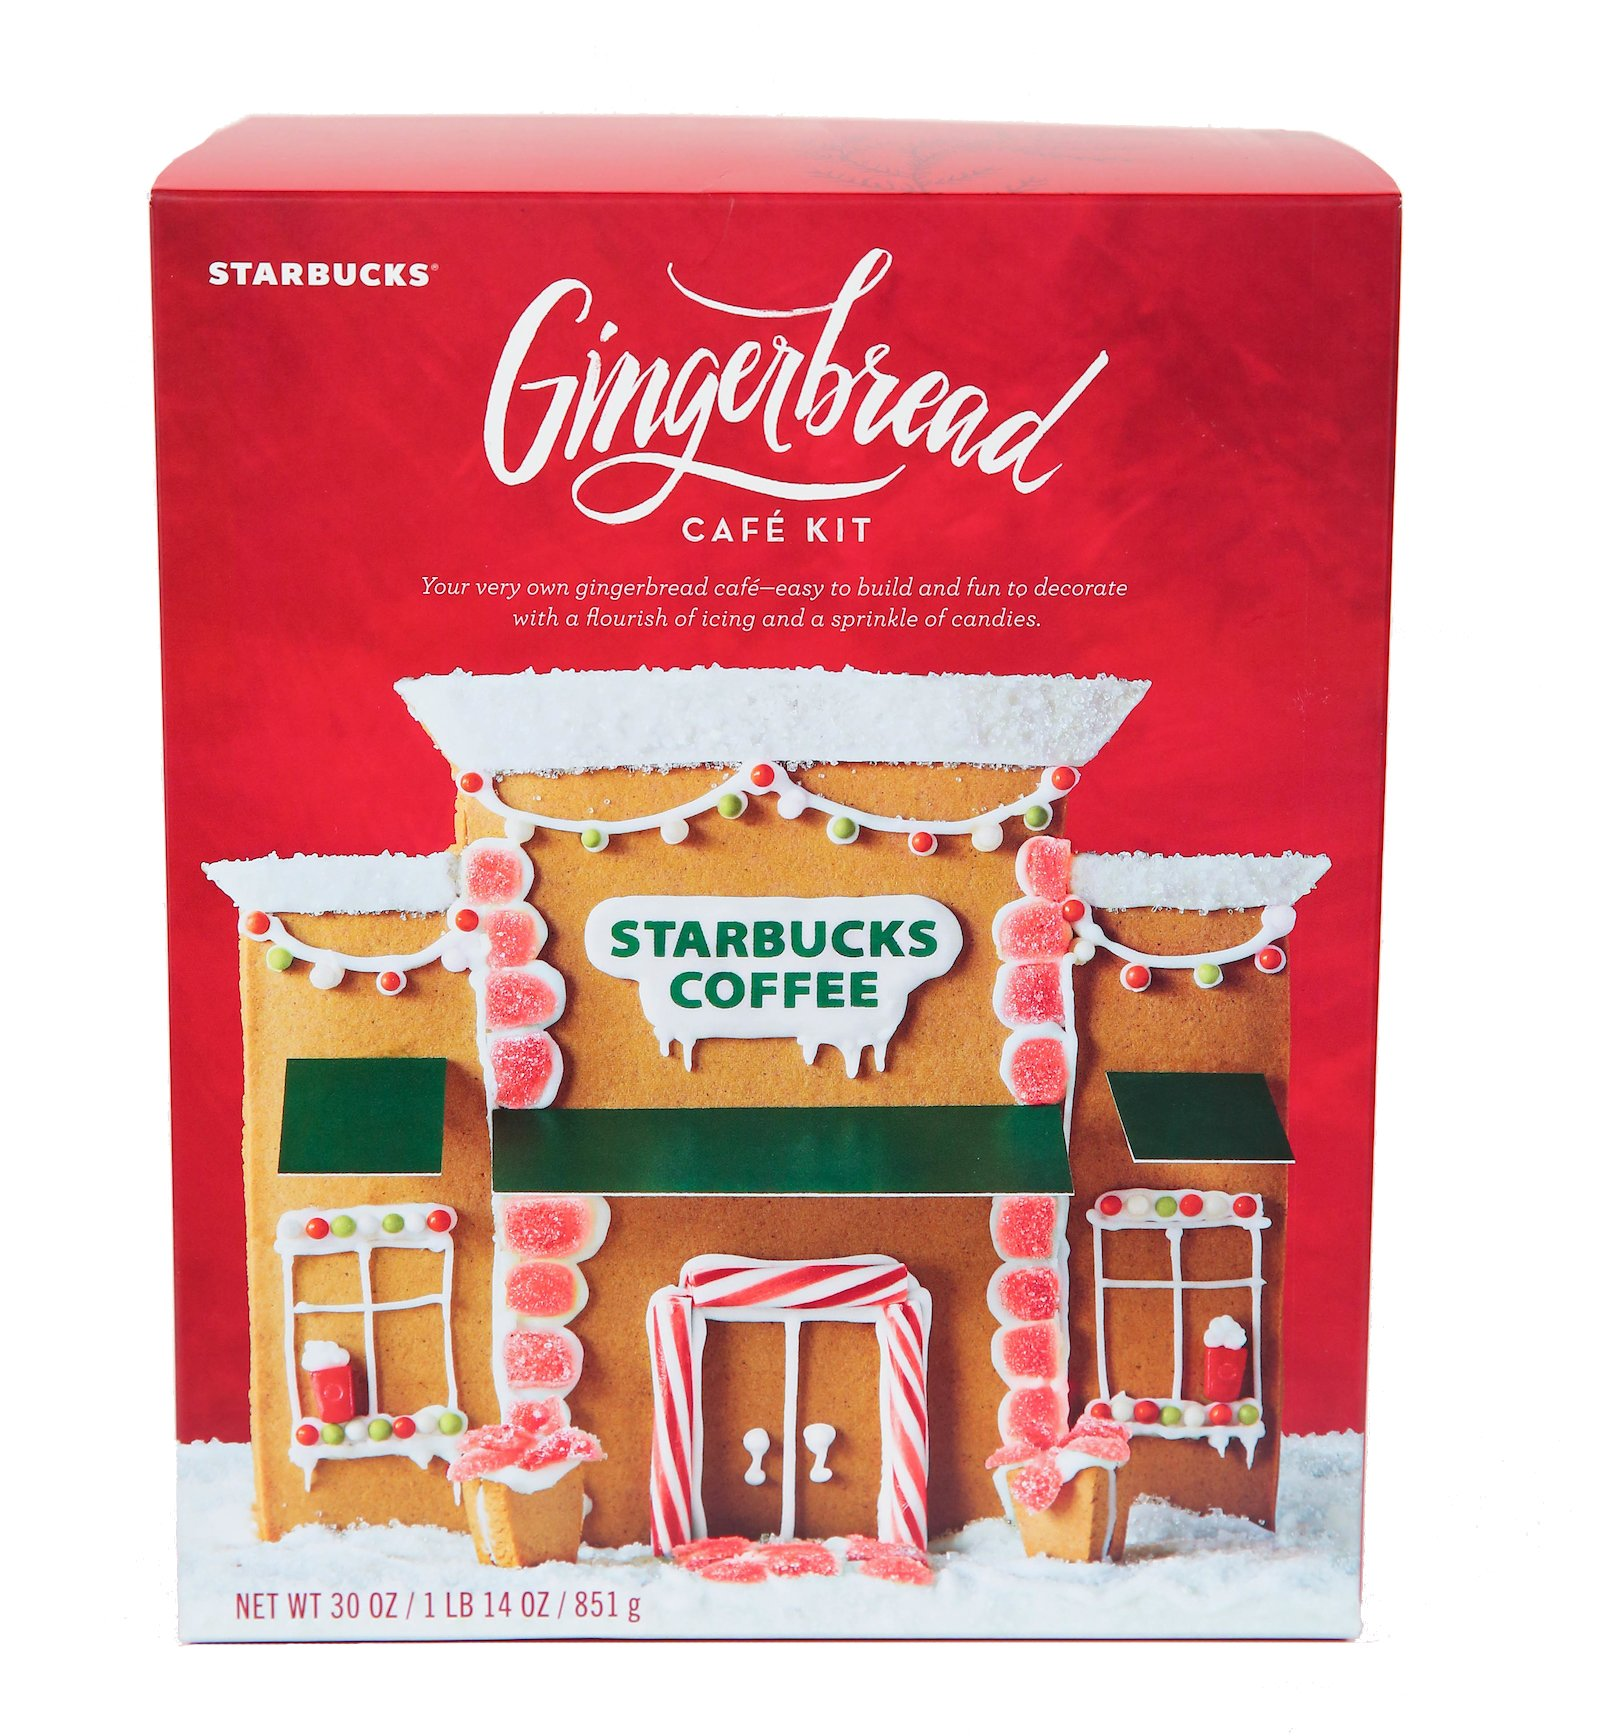 Holiday Starbucks merchandise